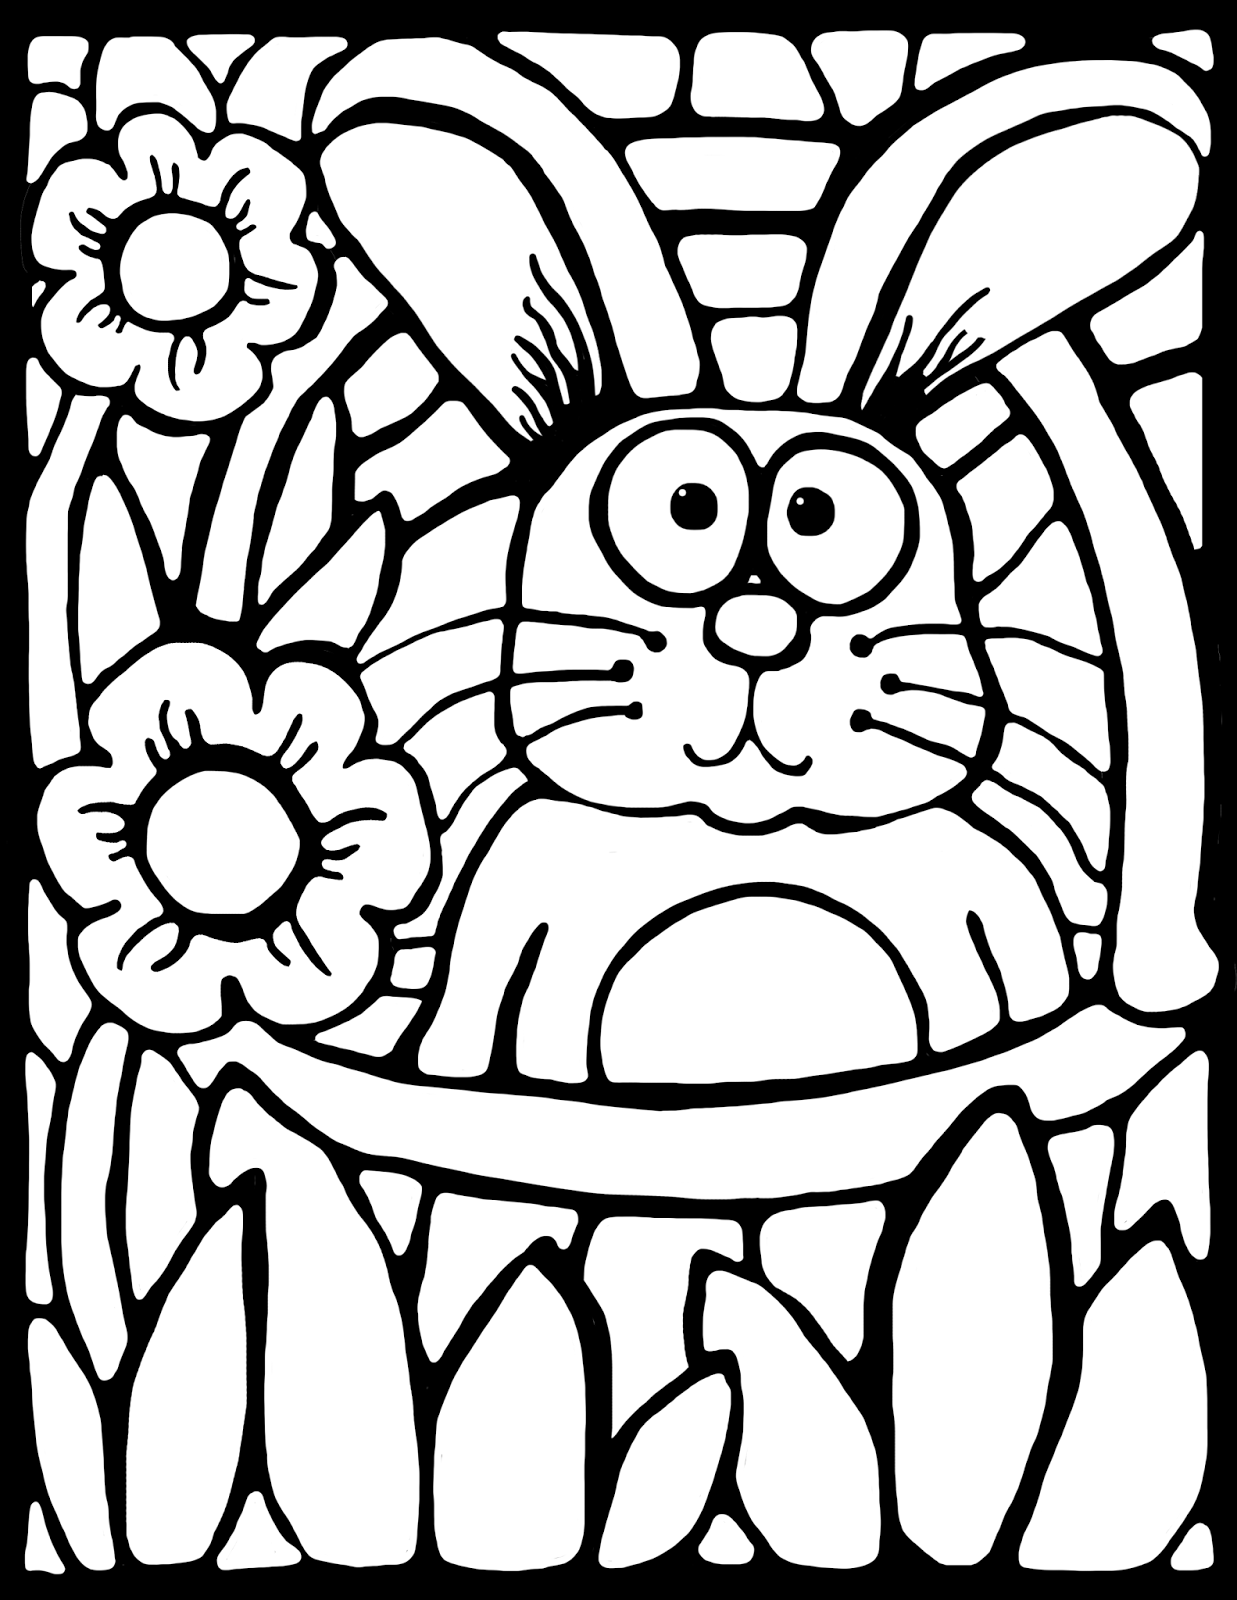 FREE adorable stained glass bunny coloring sheet for easter or springtime